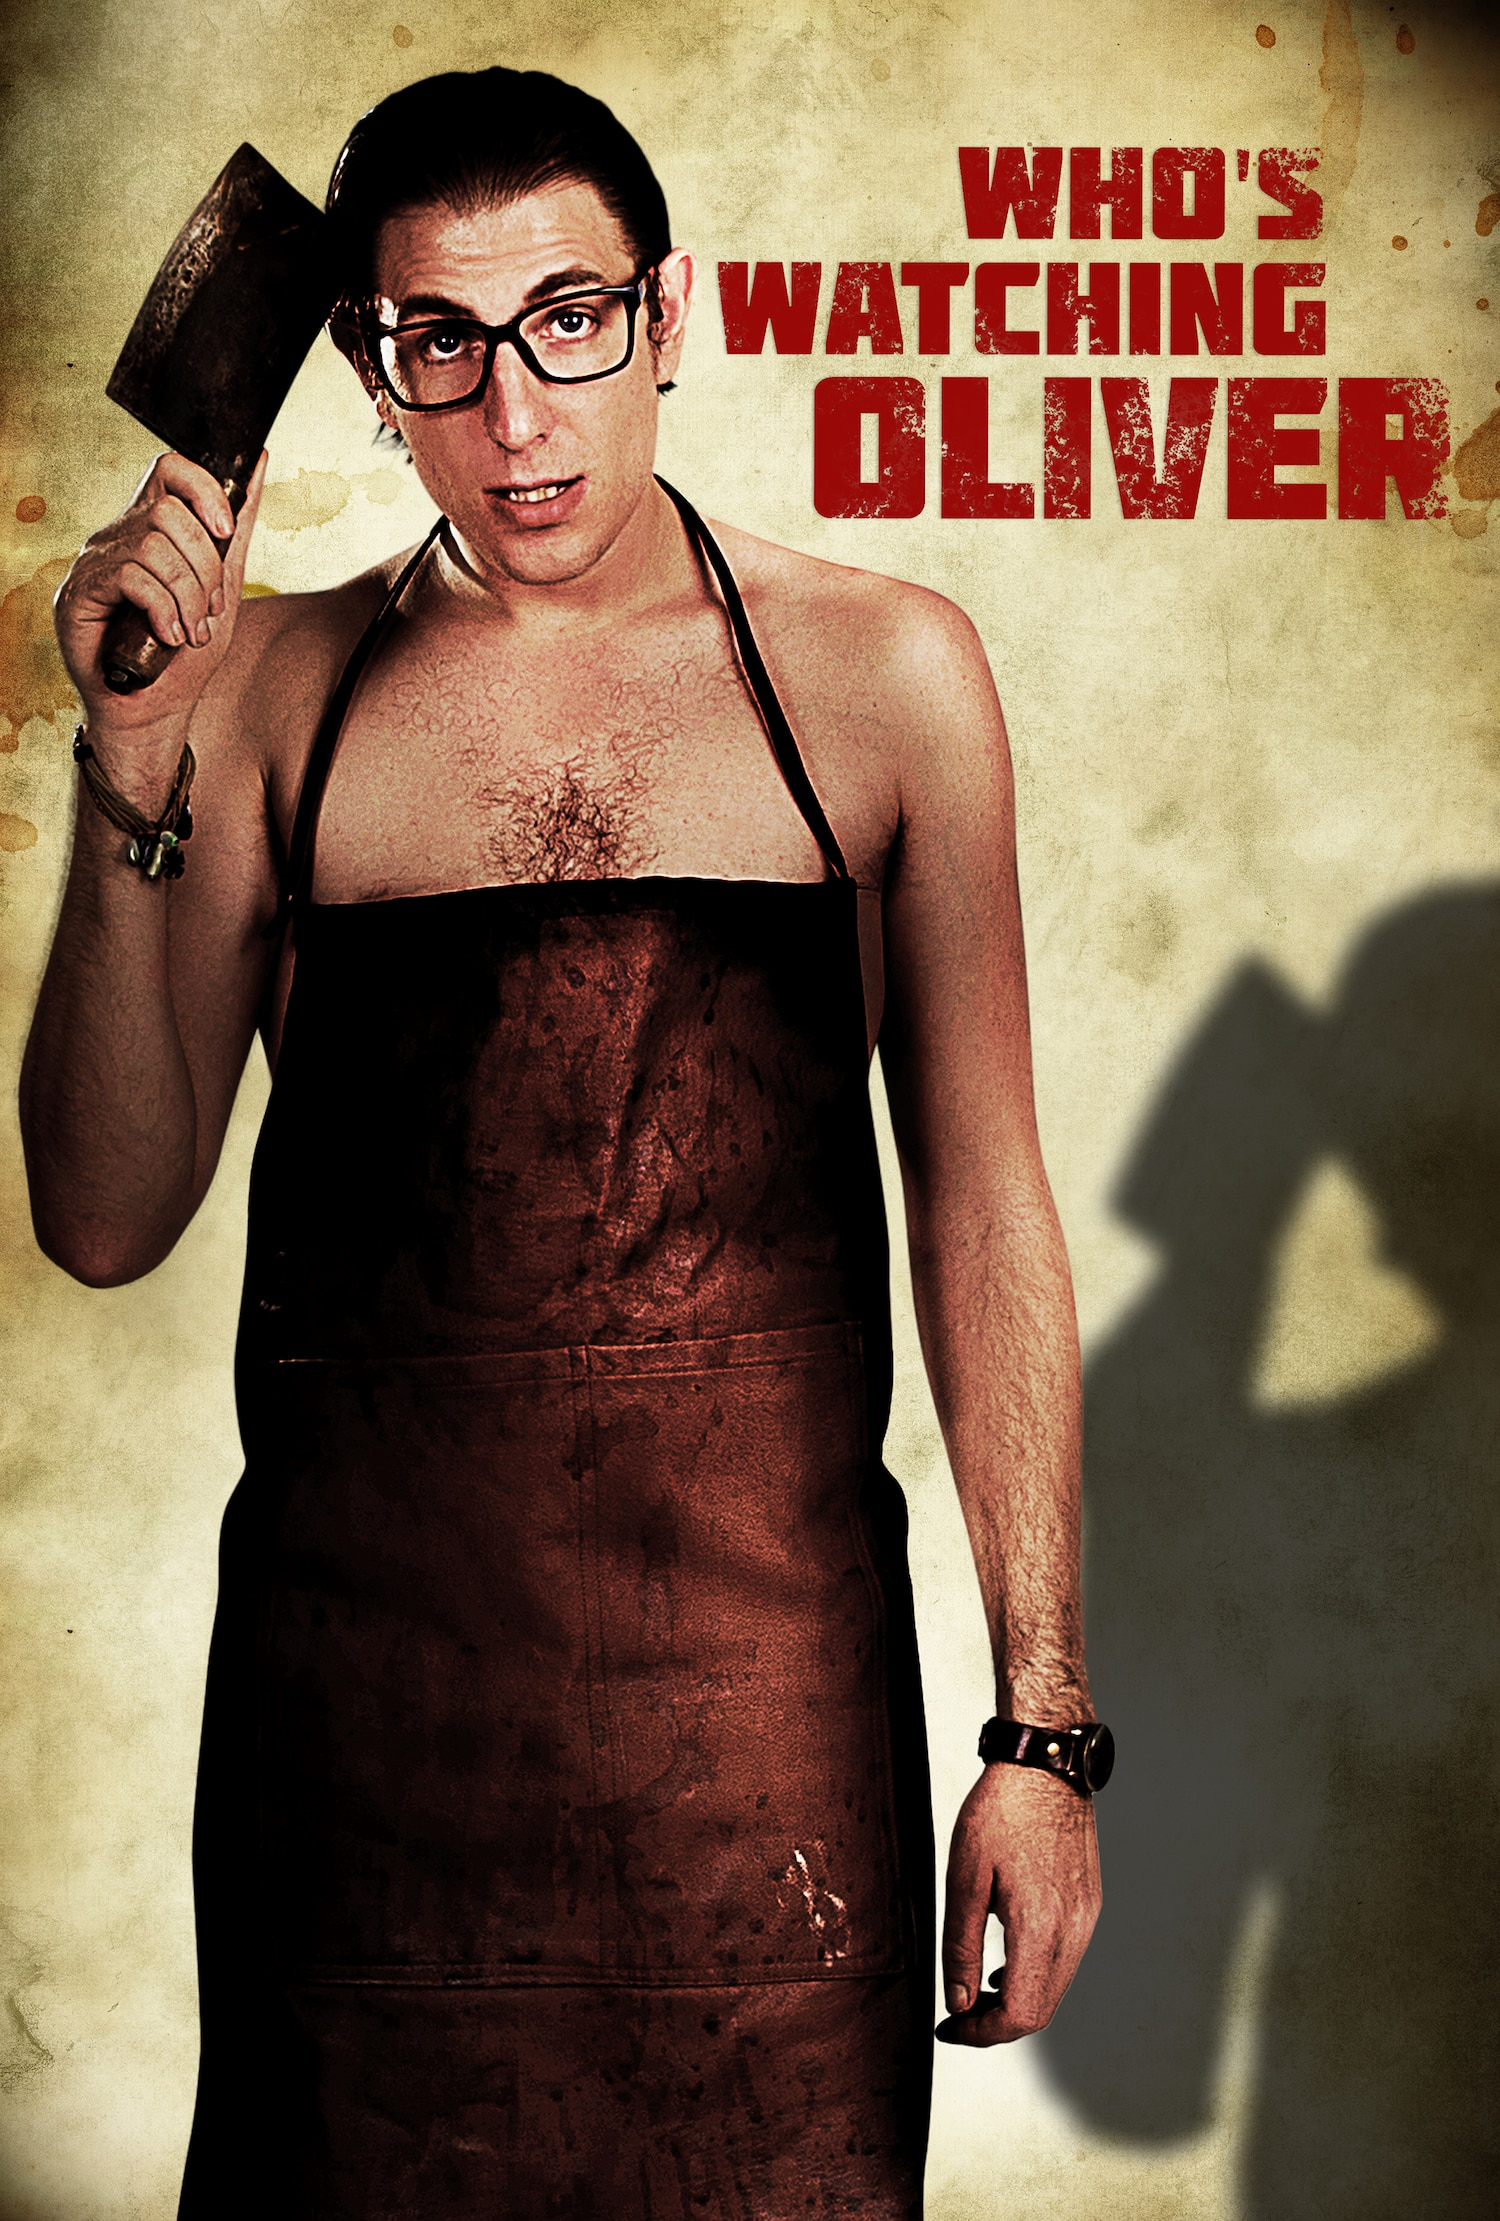 whoswatchingoliverArt Work1 - Who's Watching Oliver Hopes a Killer Can Escape His Murderous Ways